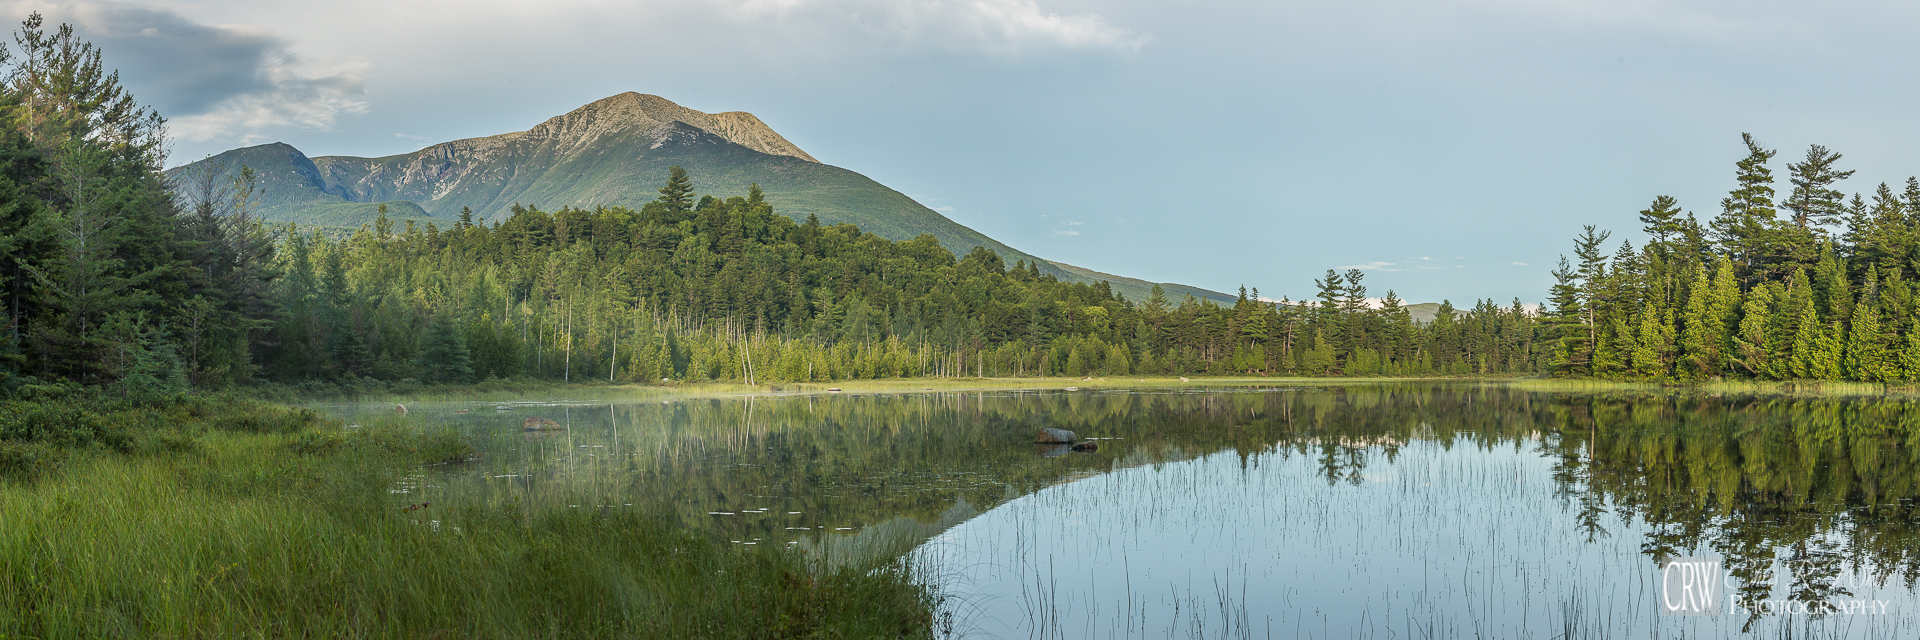 Mount Katahdin, looking south from within Baxter State Park